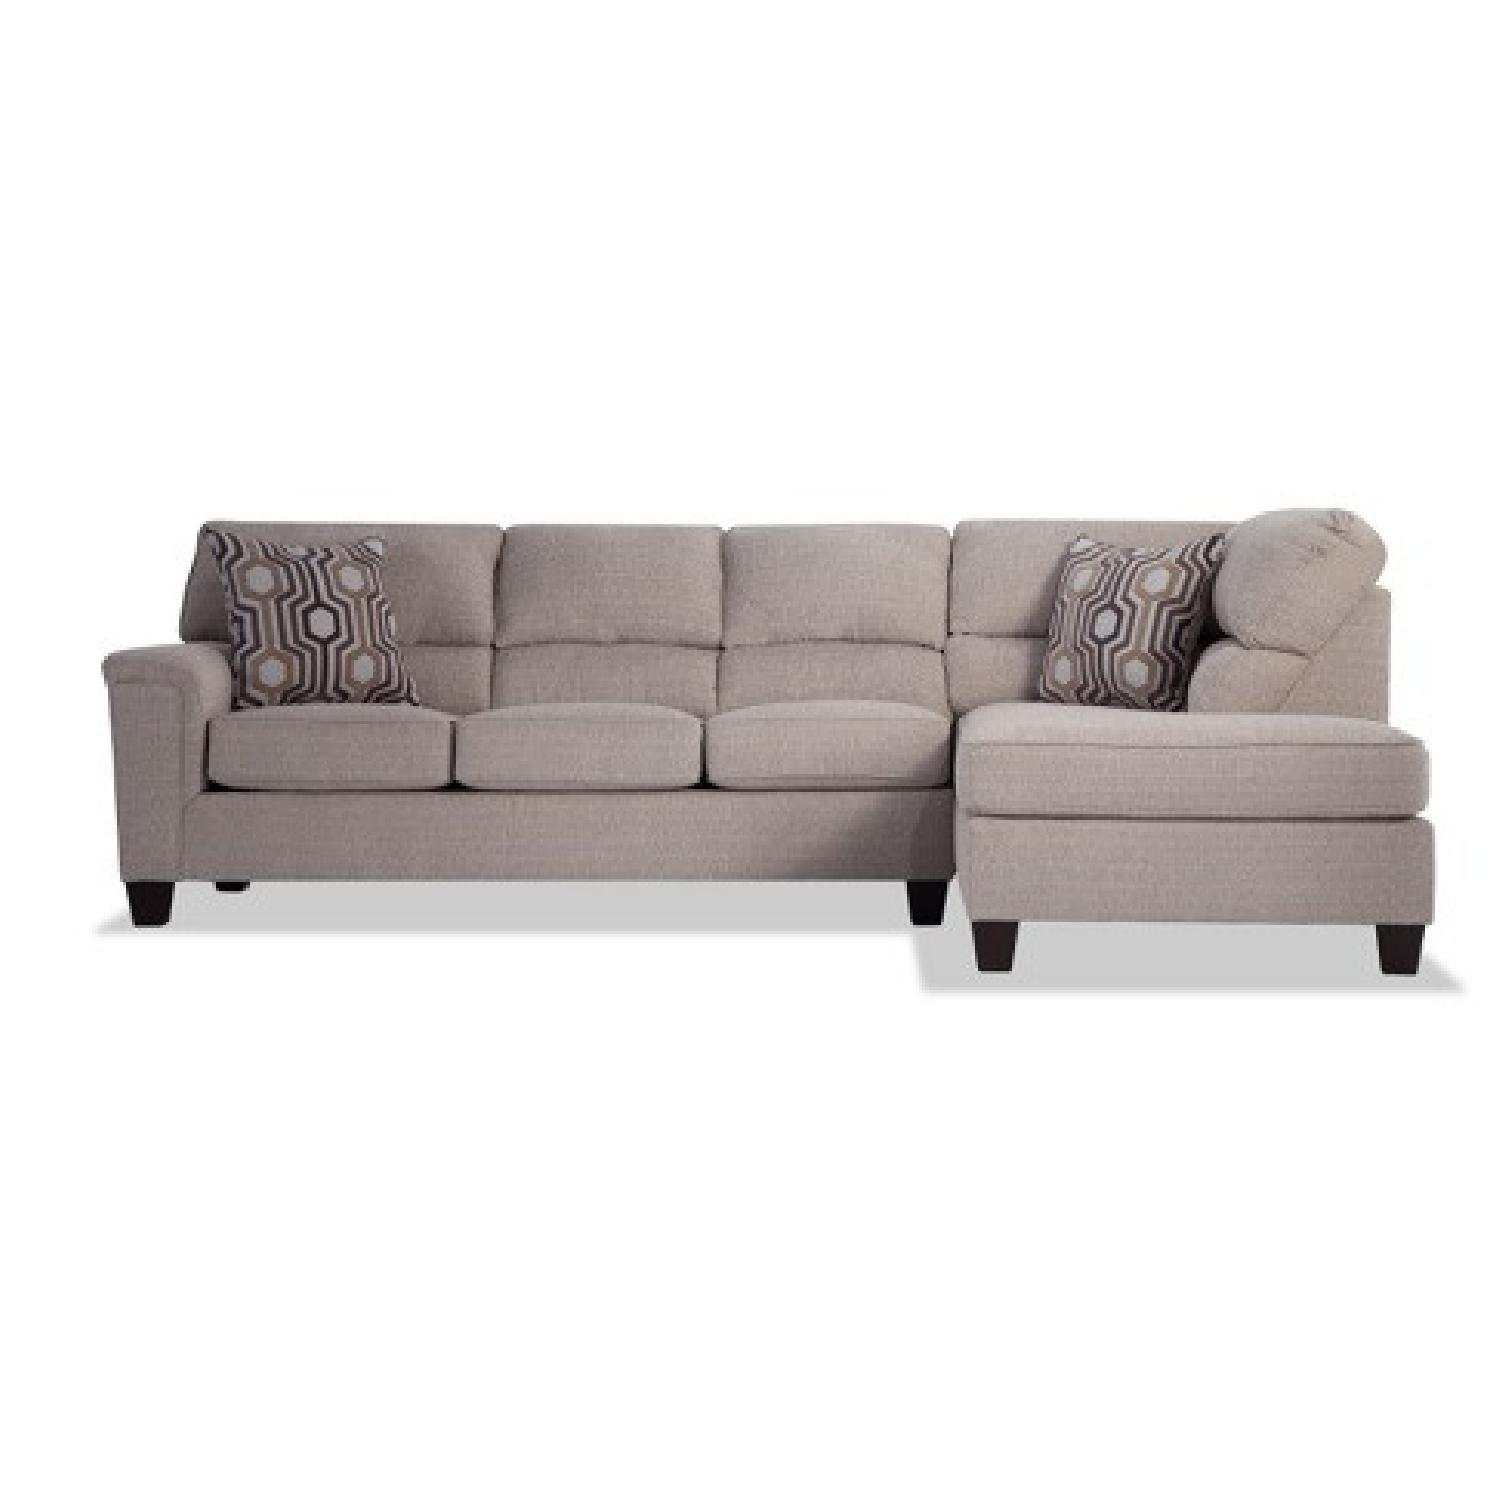 Bob's Discount Beige Sectional - image-4